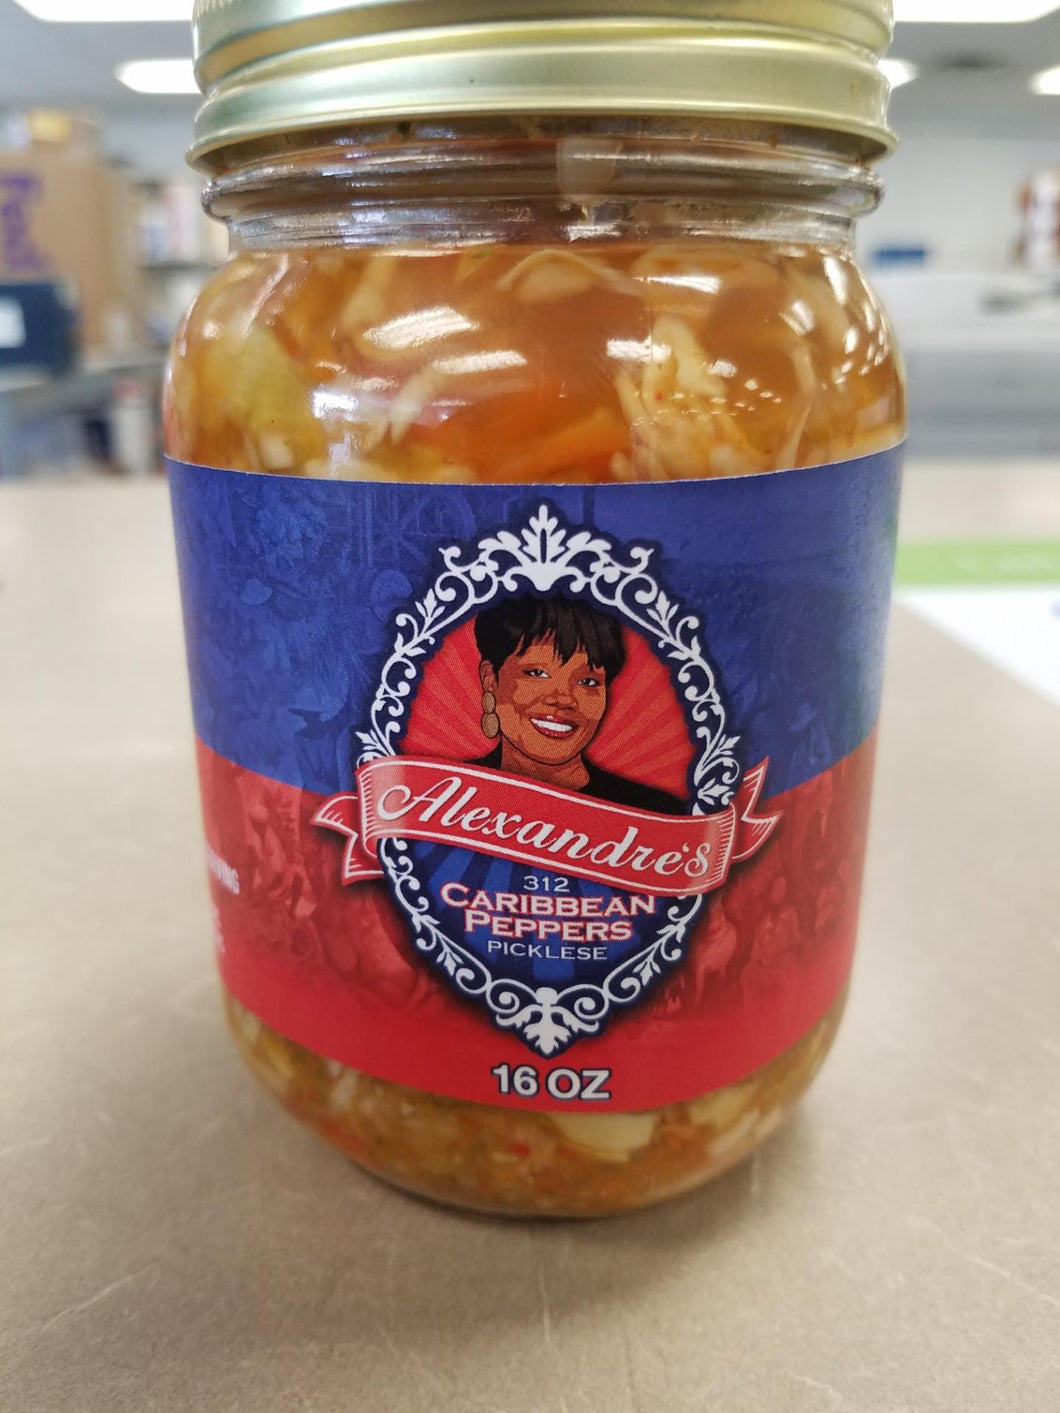 VERY HOT. Alexandre's Caribbean Peppers - Habanero-Pineapple Picklese